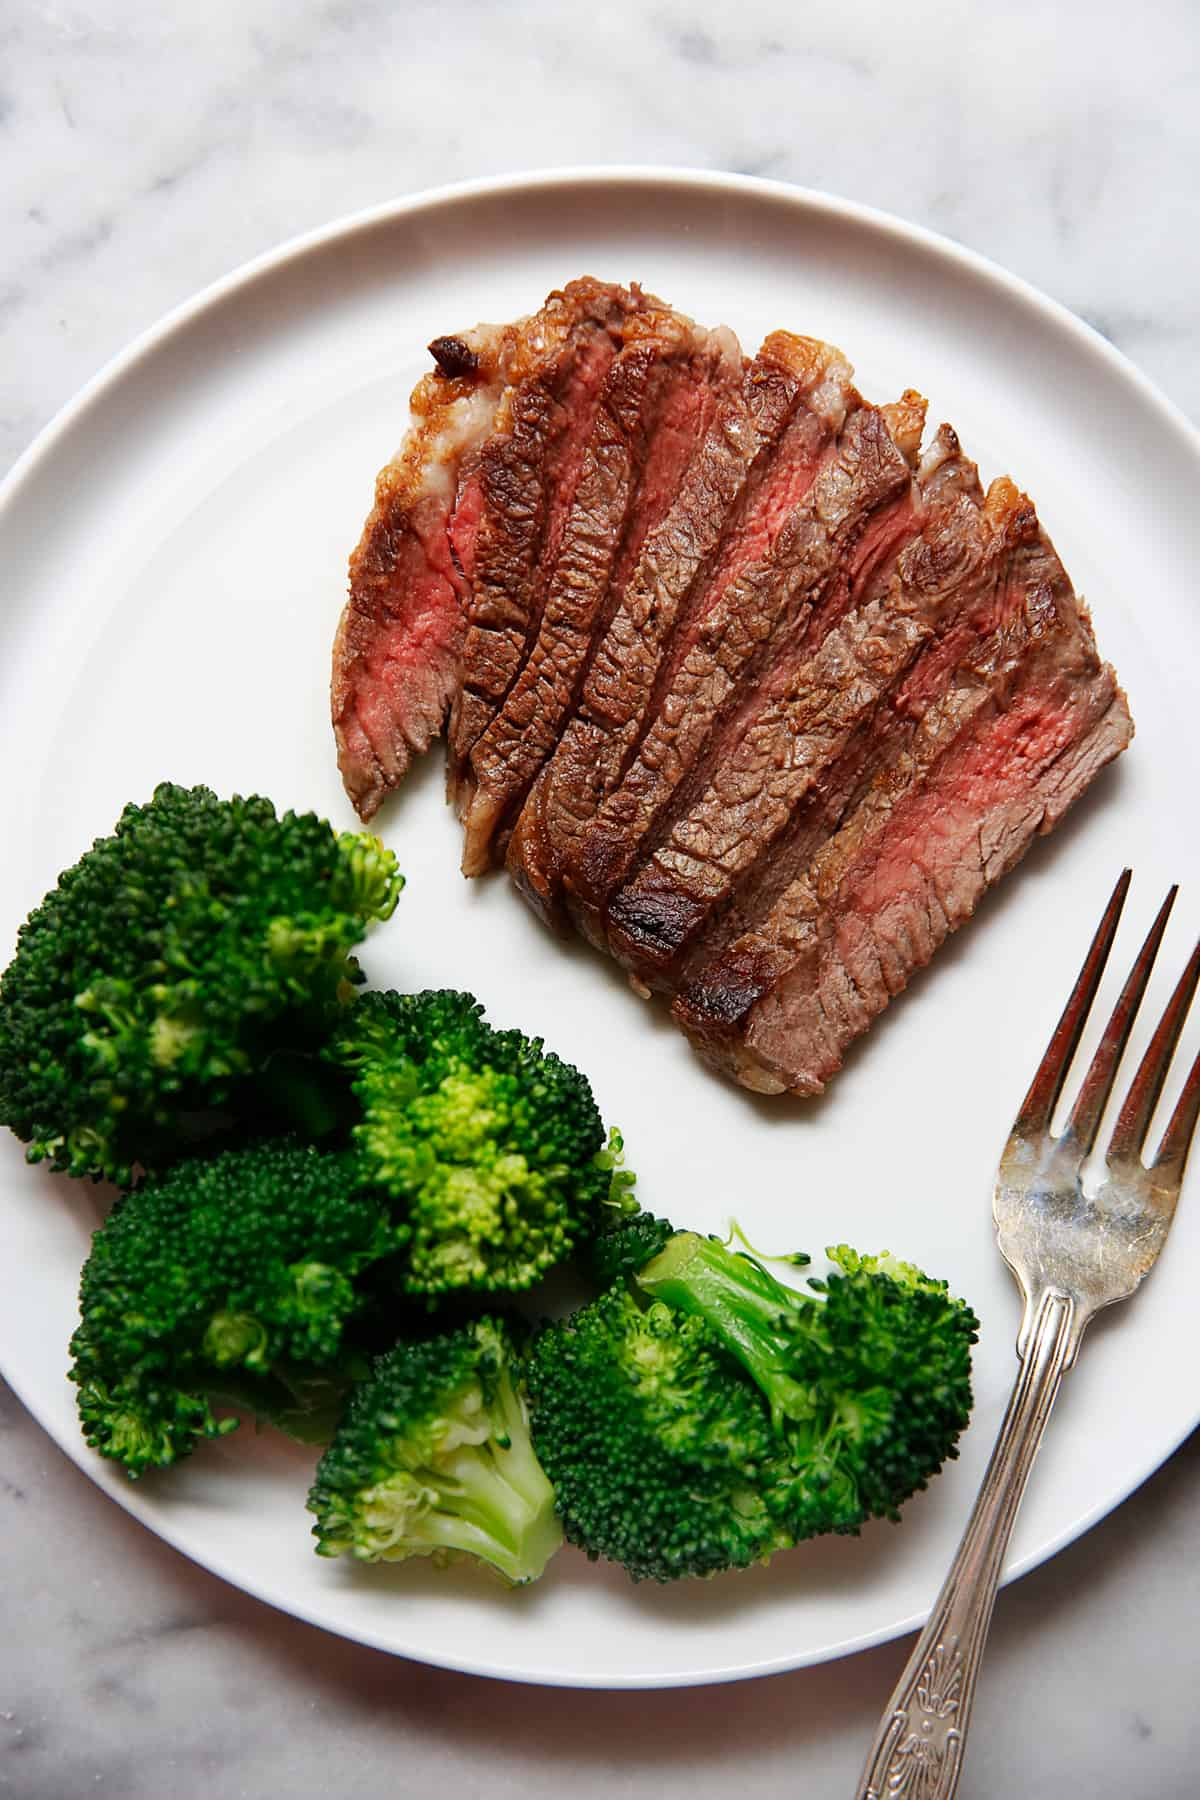 Pan seared steak with butter